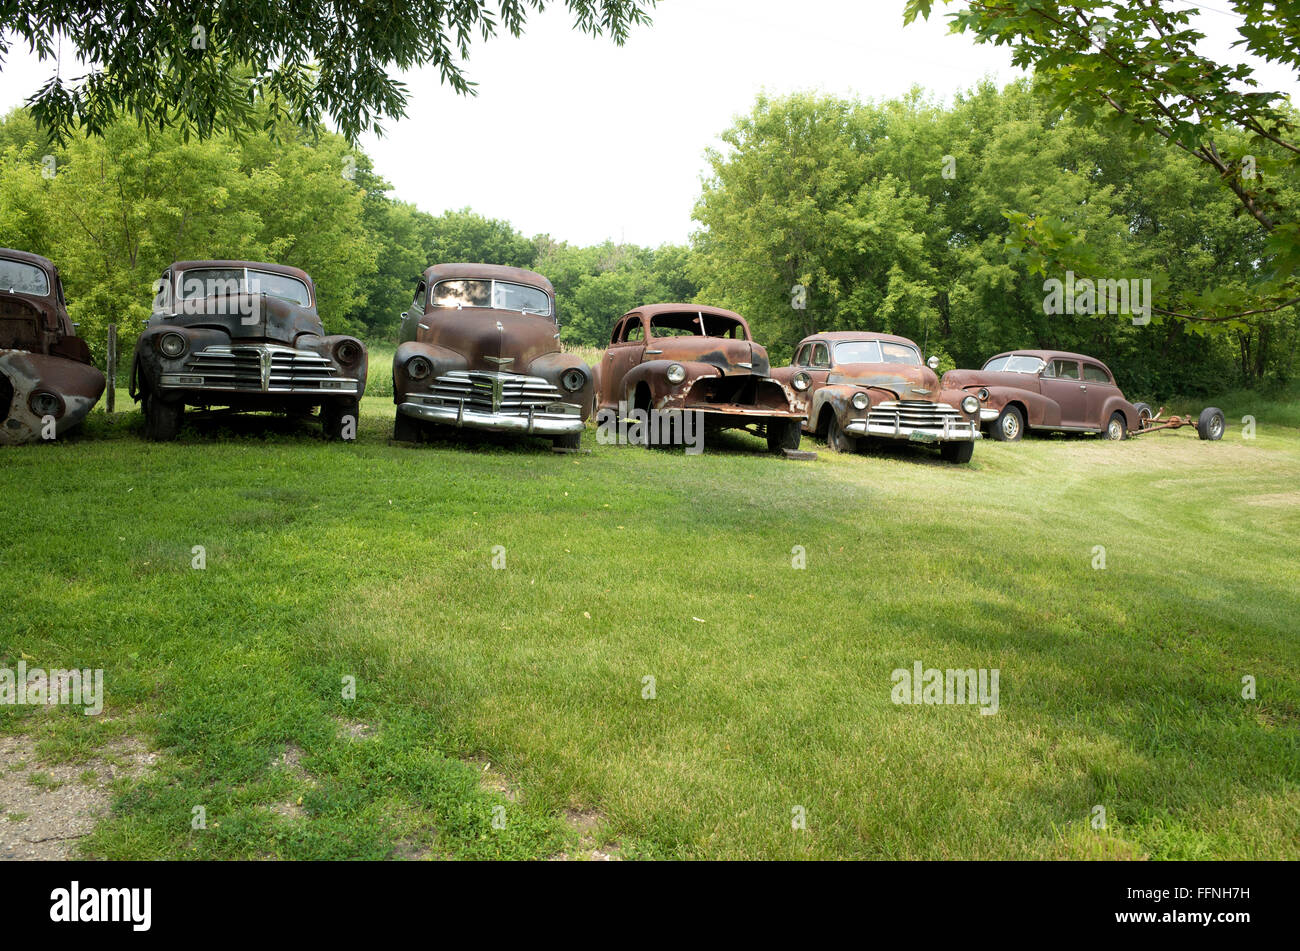 Rusting Cars Stock Photos & Rusting Cars Stock Images - Alamy